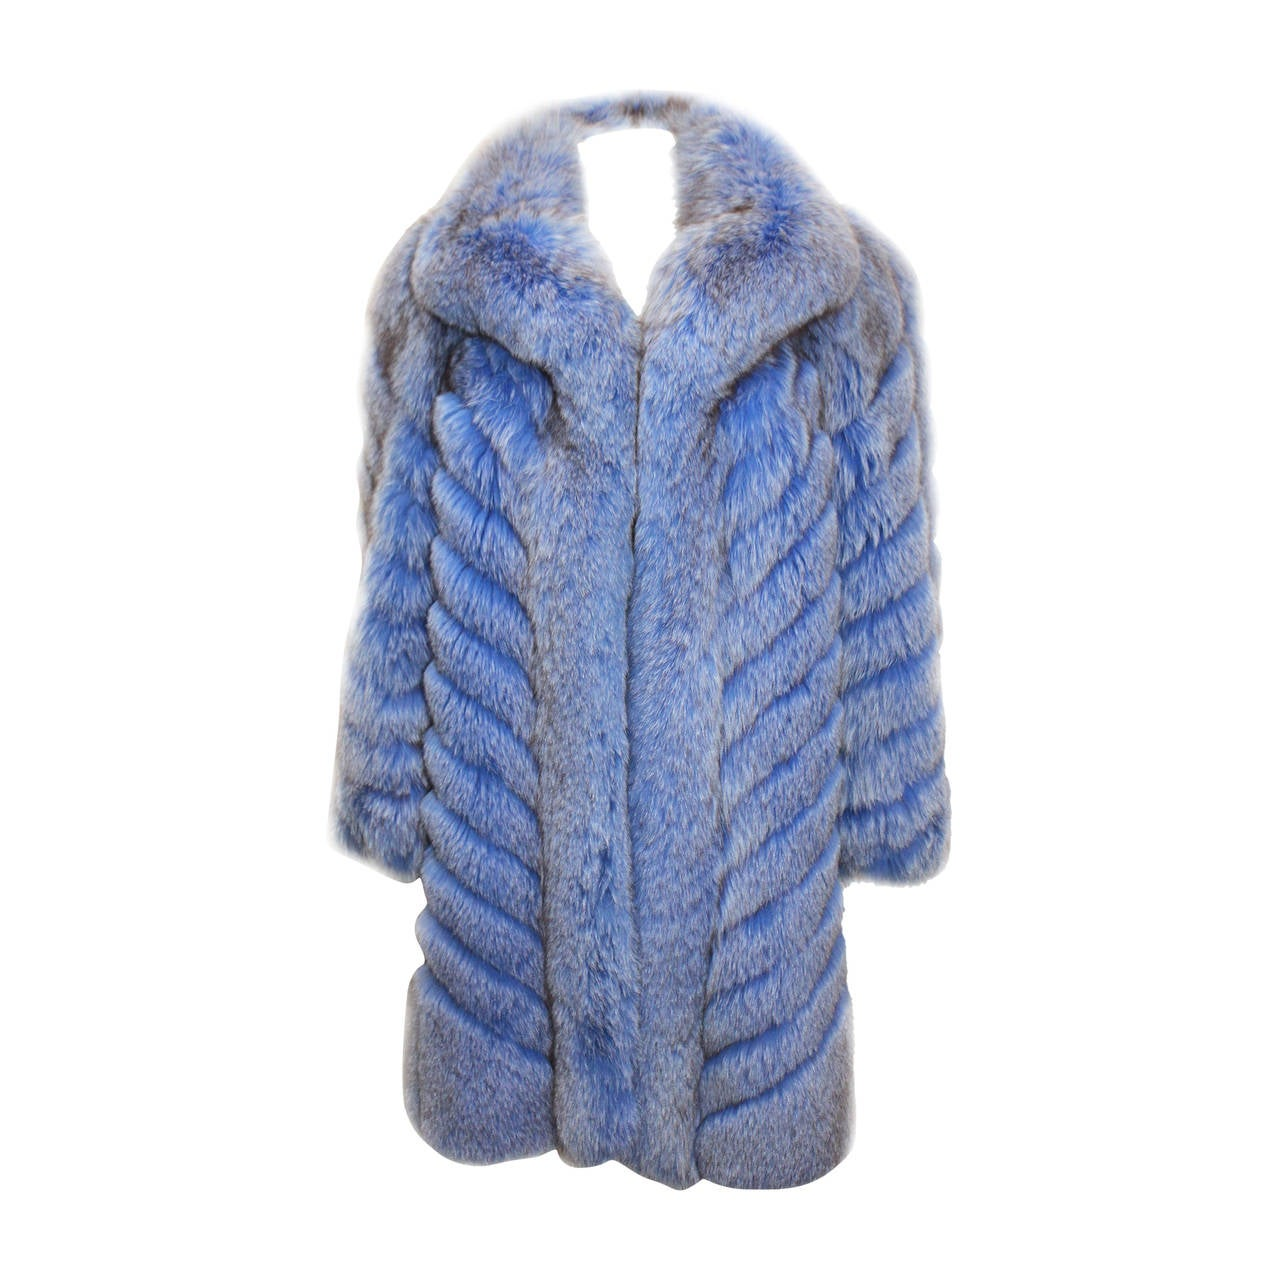 Exceptional 1980s Swiss Oversized Blue Fox Fur Coat 1